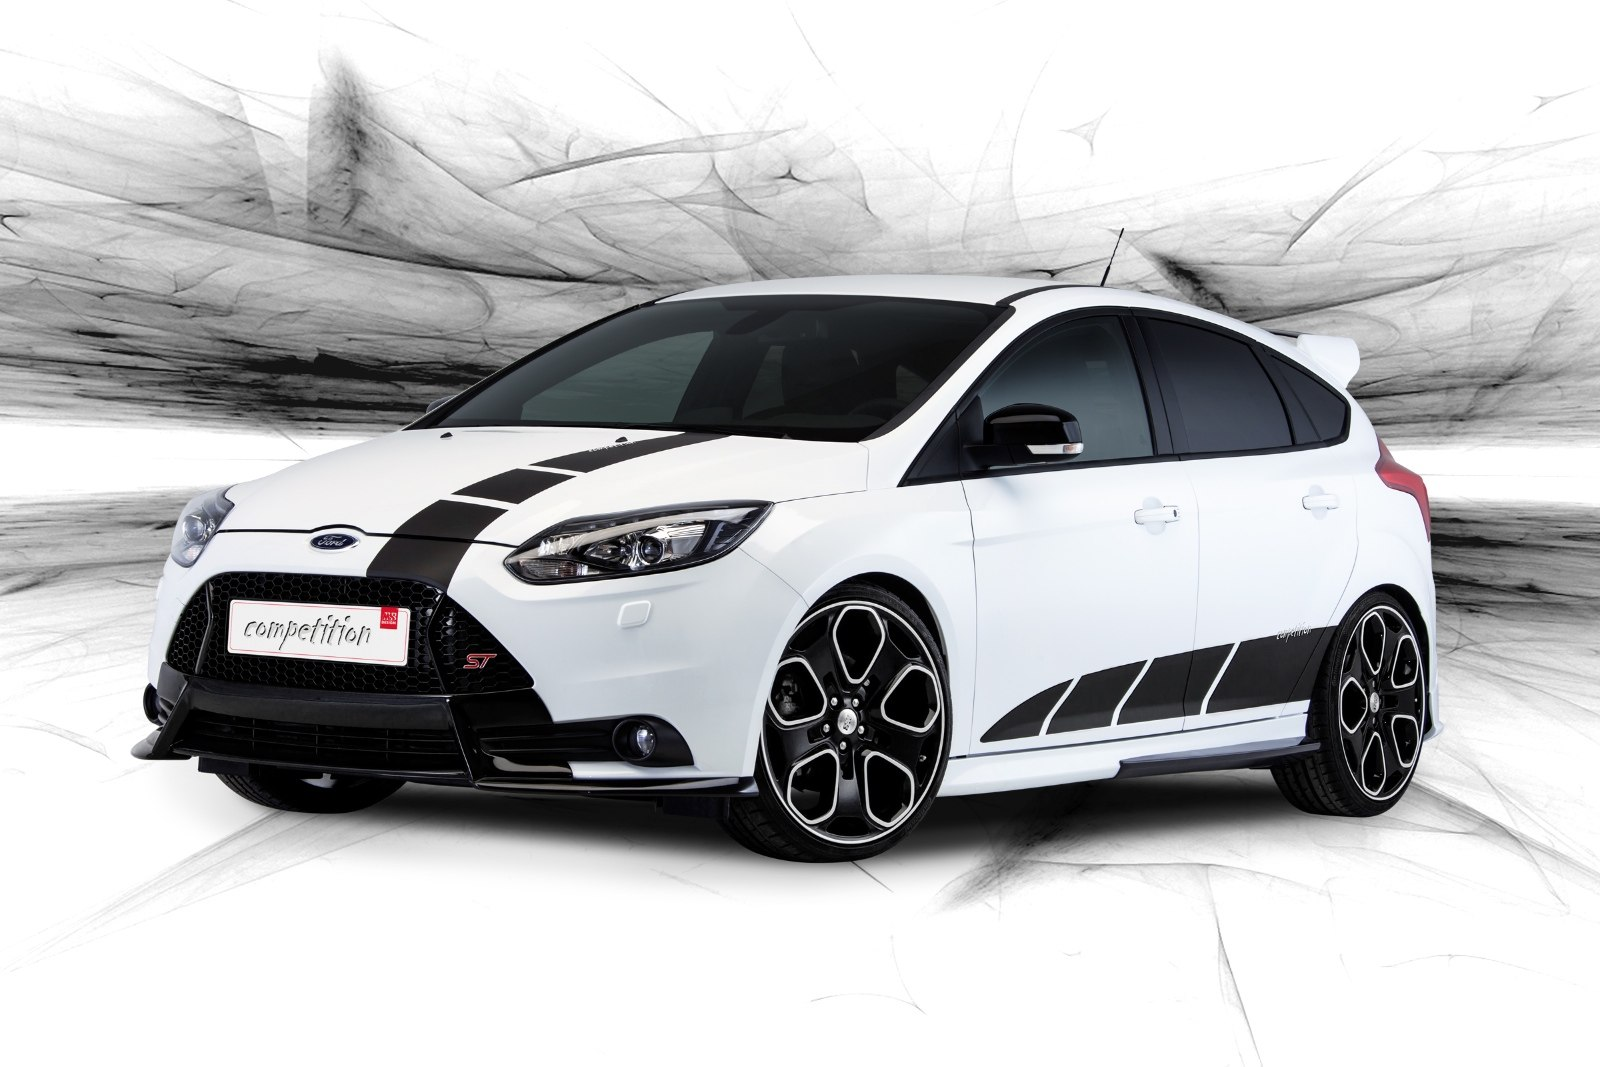 2014 Ford Focus ST Wallpaper   HD 1600x1067